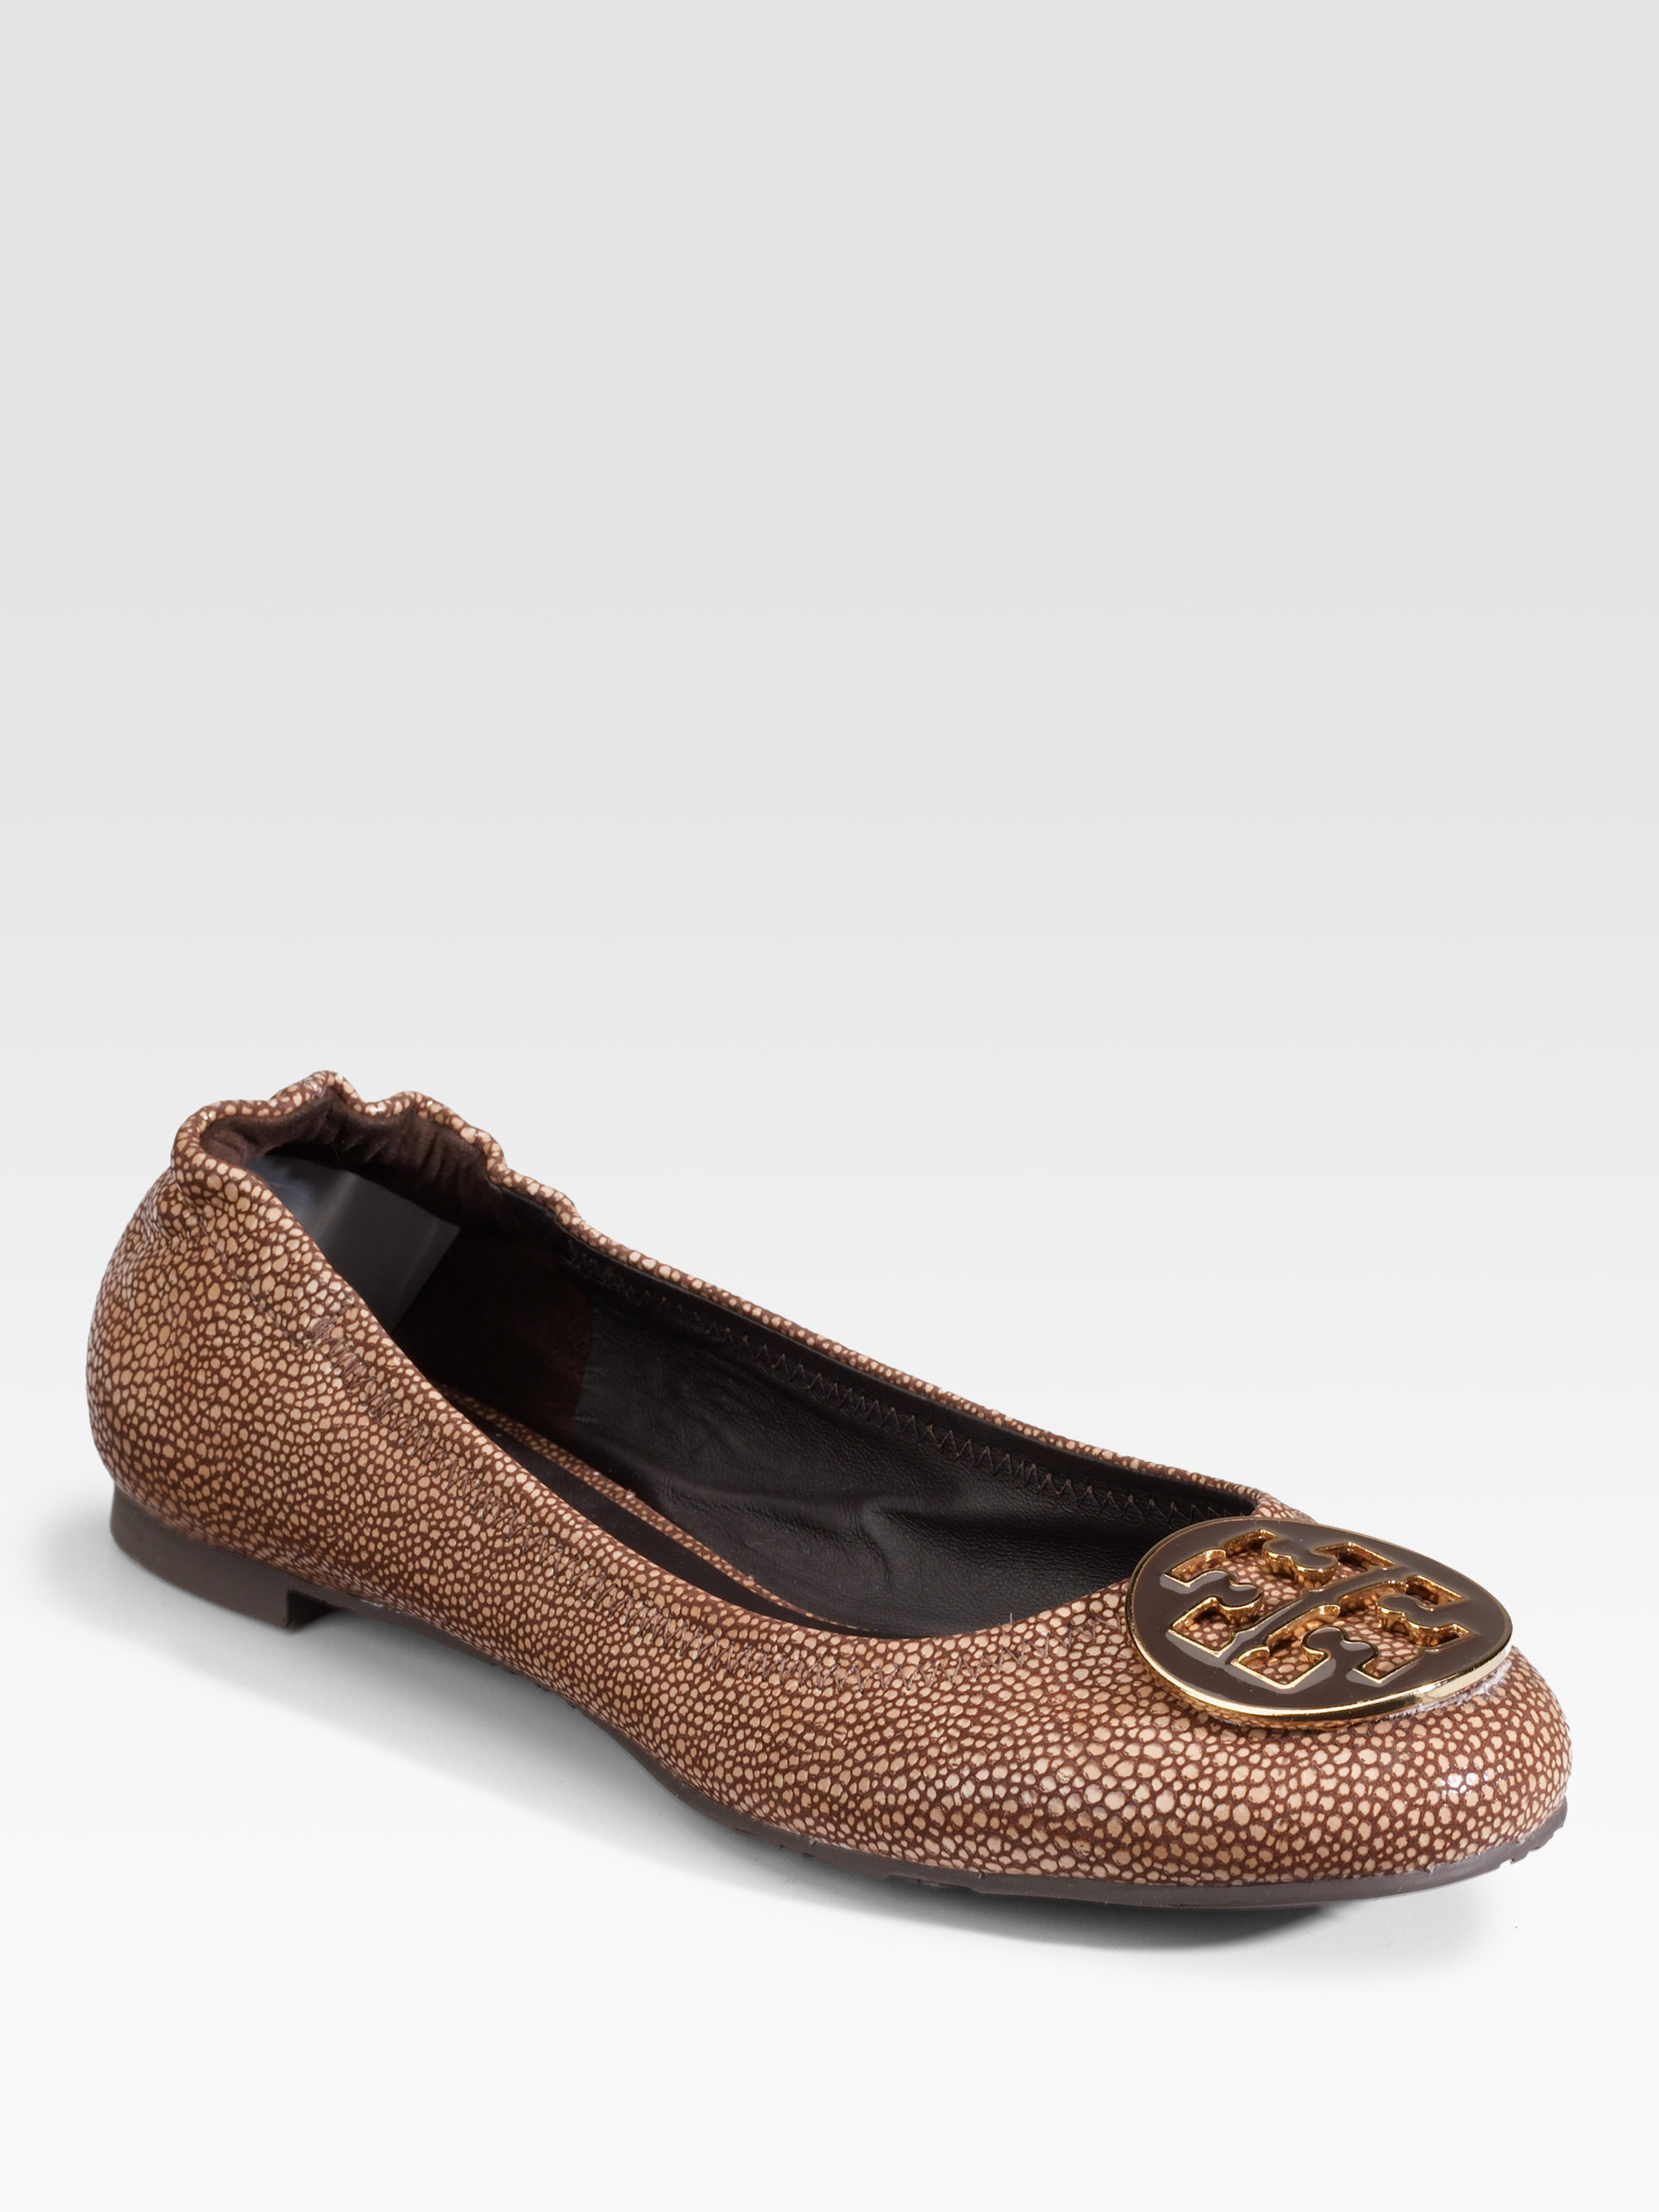 68127384abe52b Lyst - Tory Burch Reva Stingray Leather Ballet Flats in Brown